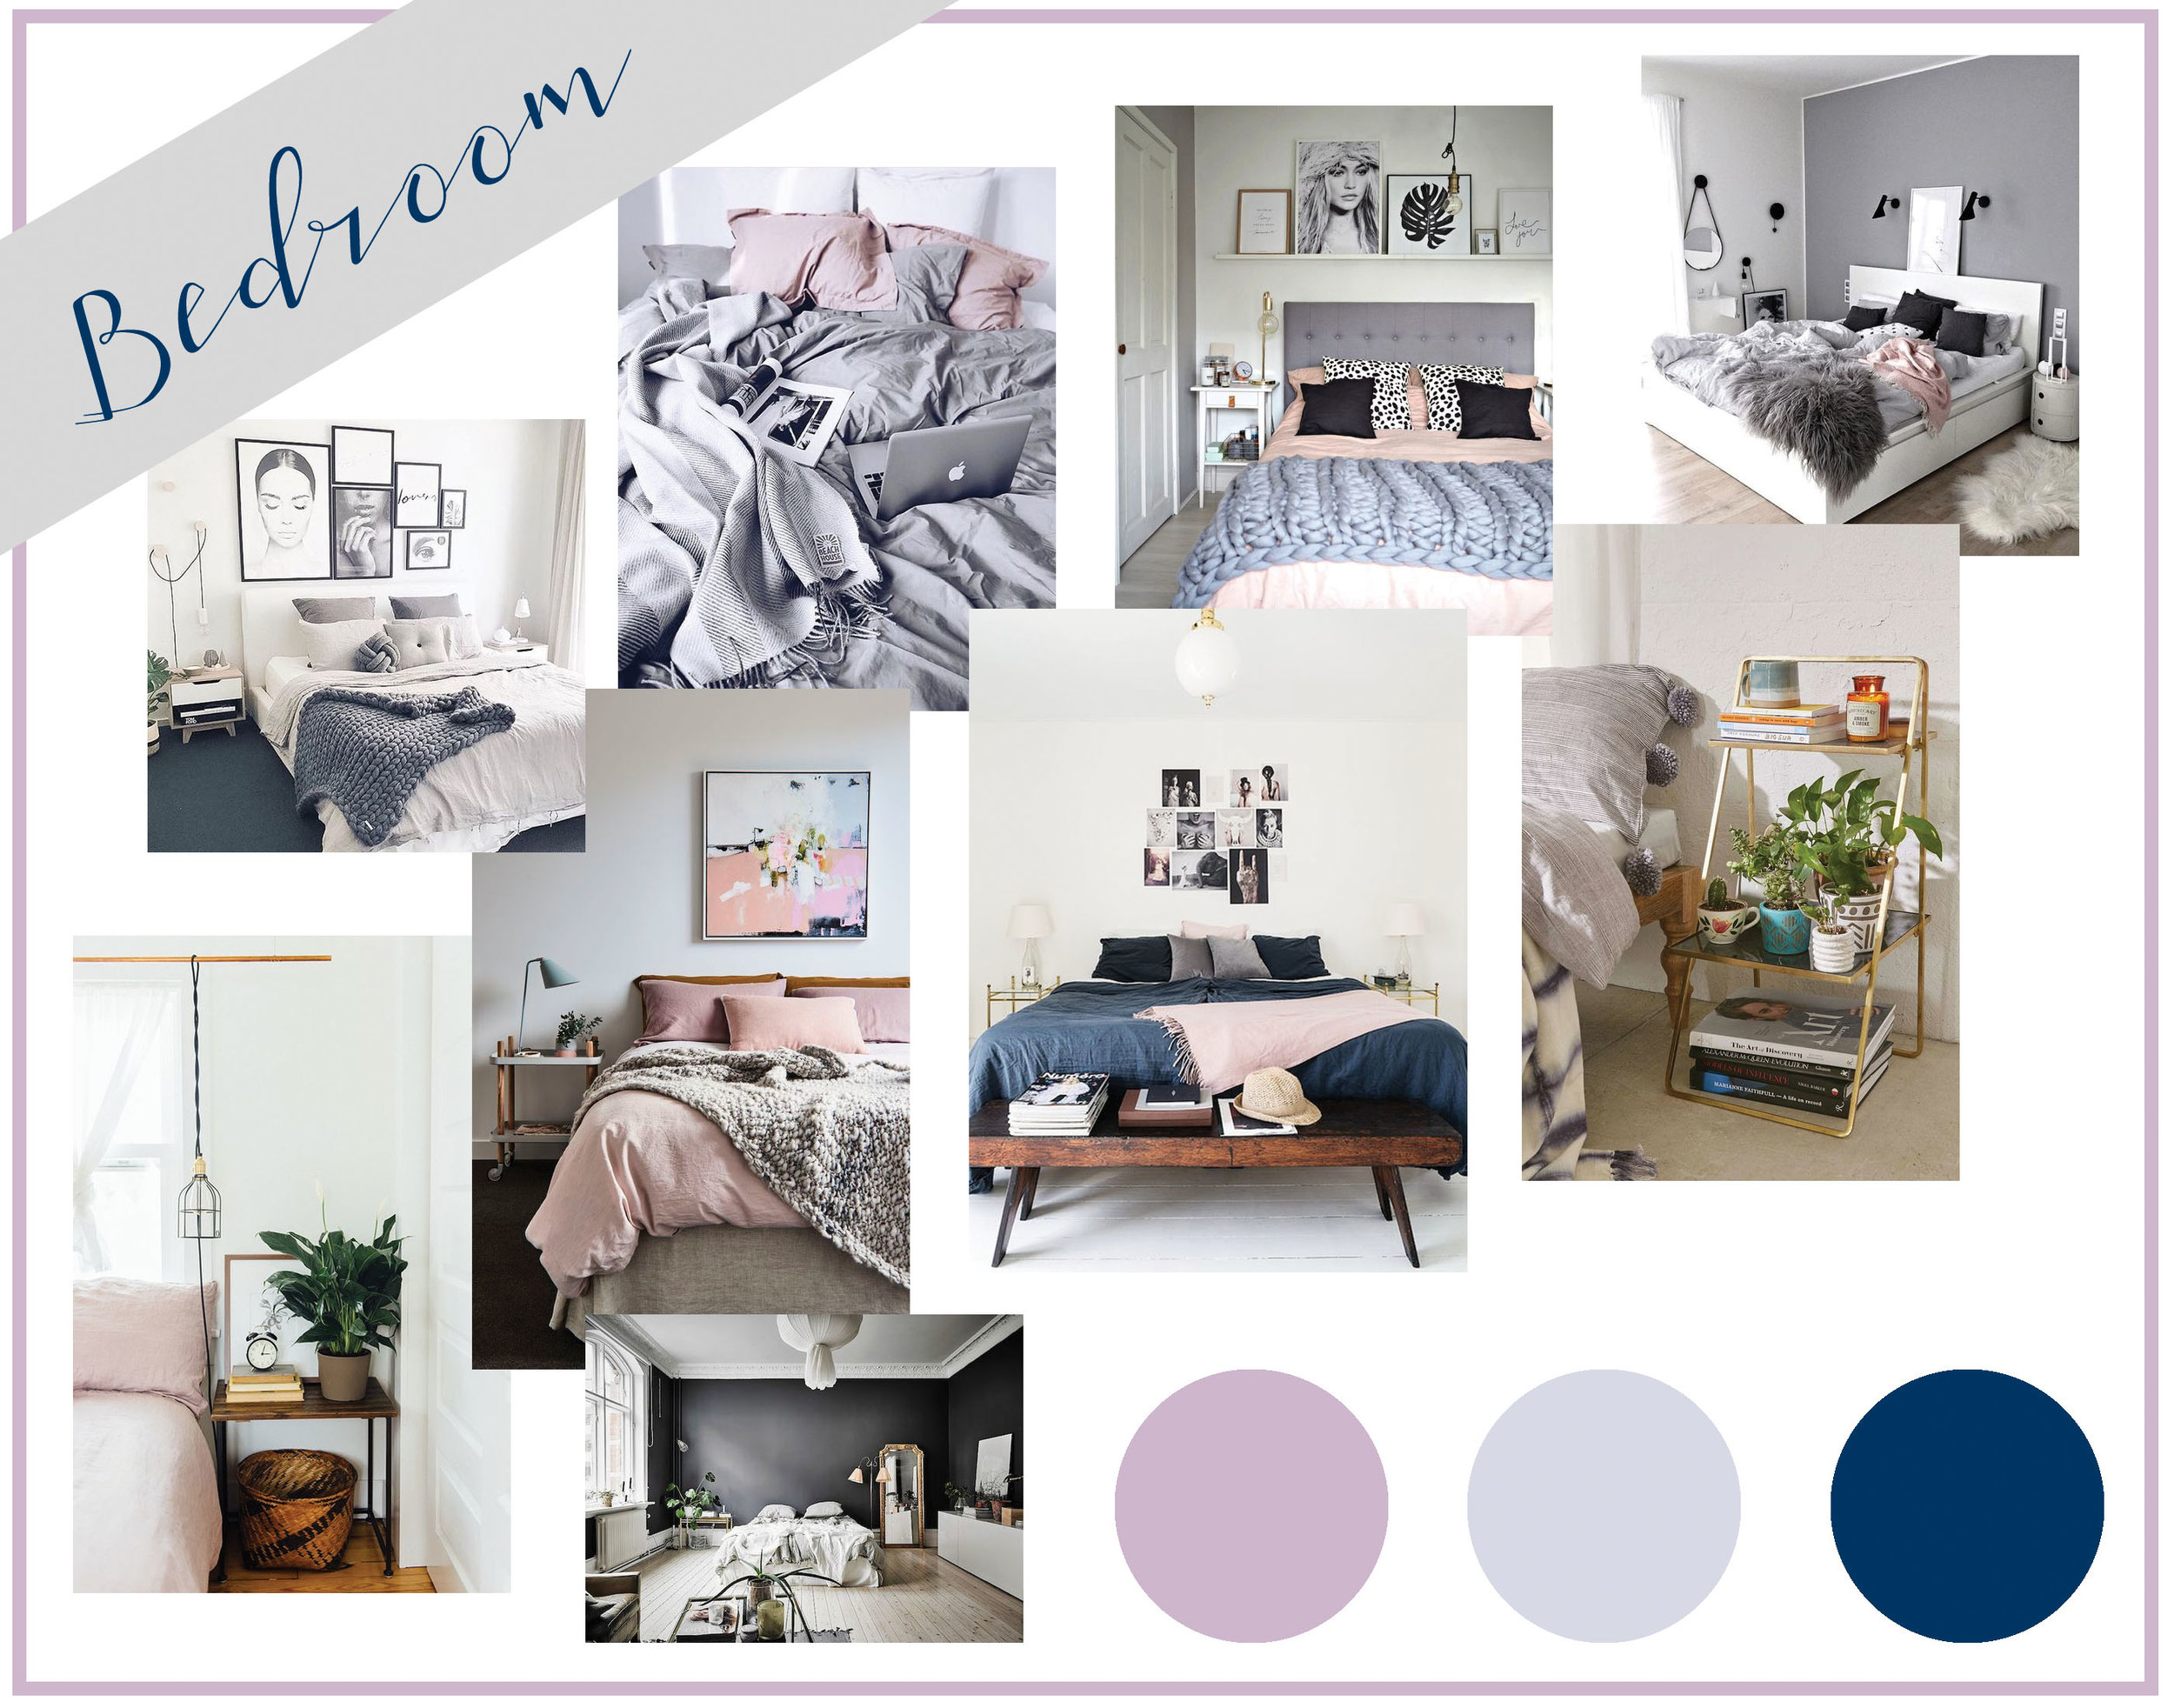 Blush. Gray. Navy. I am OBSESSED with this color scheme for a bedroom! I love the simplicity of it. These colors with light wood furniture and white accents, it is the perfect minimal bedroom.